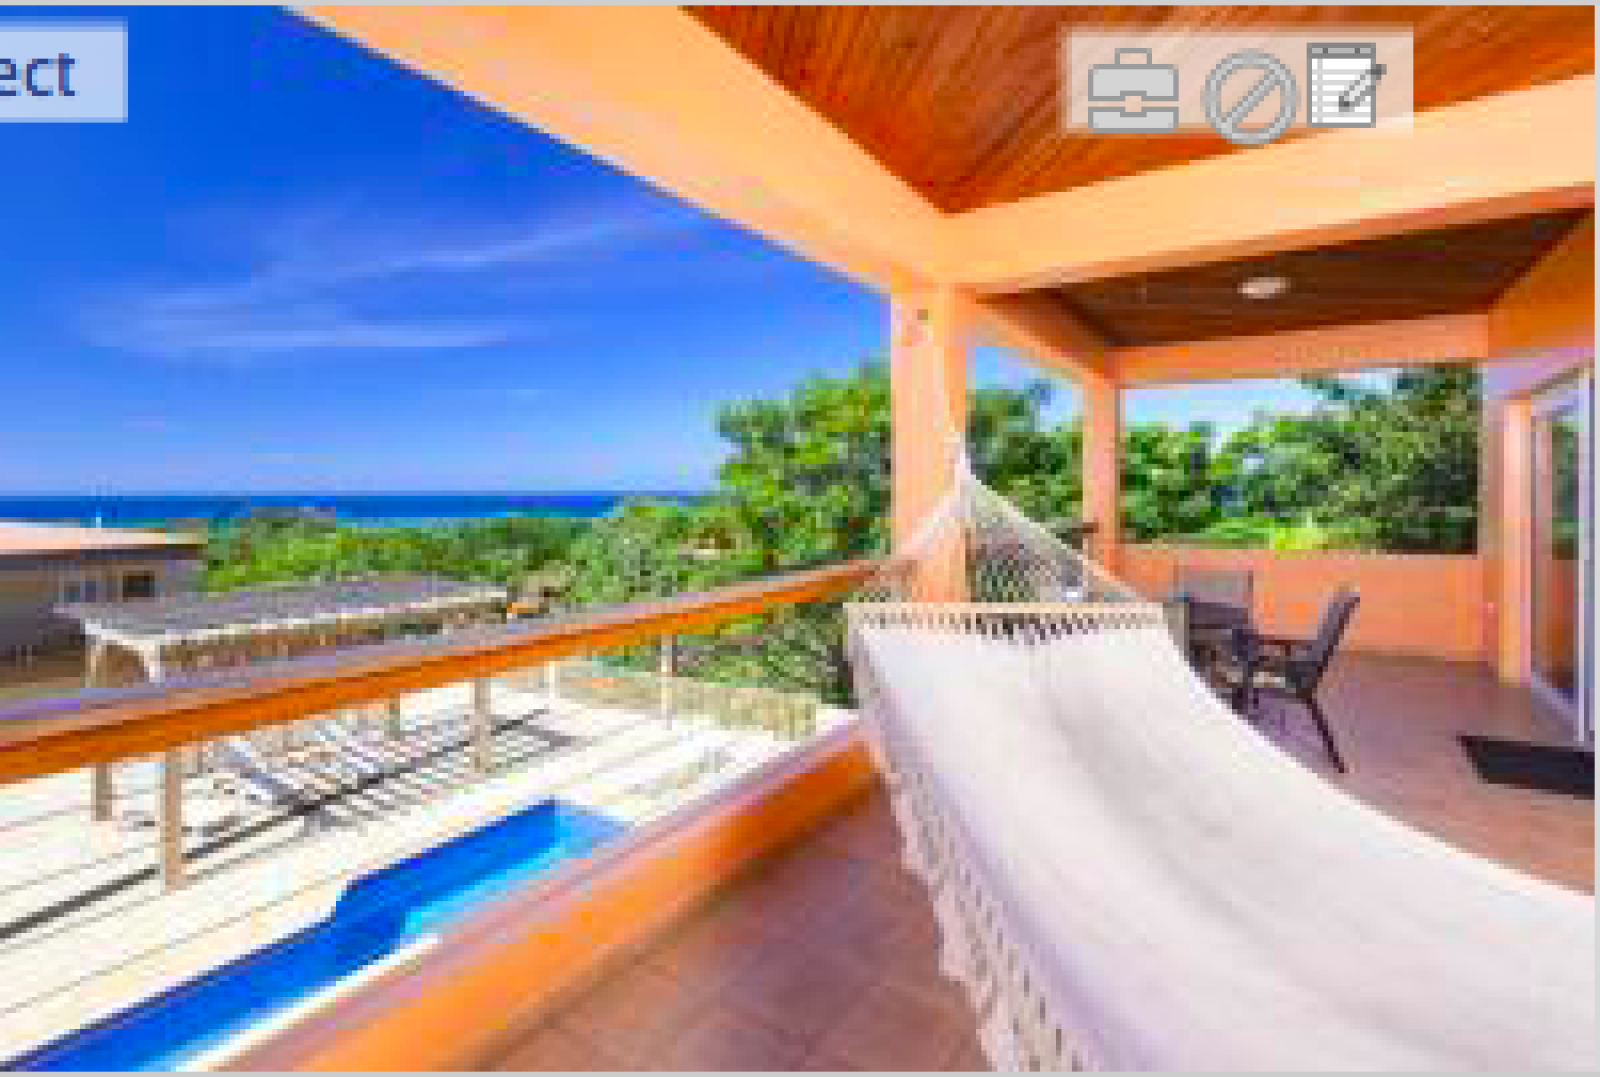 Relax and enjoy the breezes and views from the verandah.